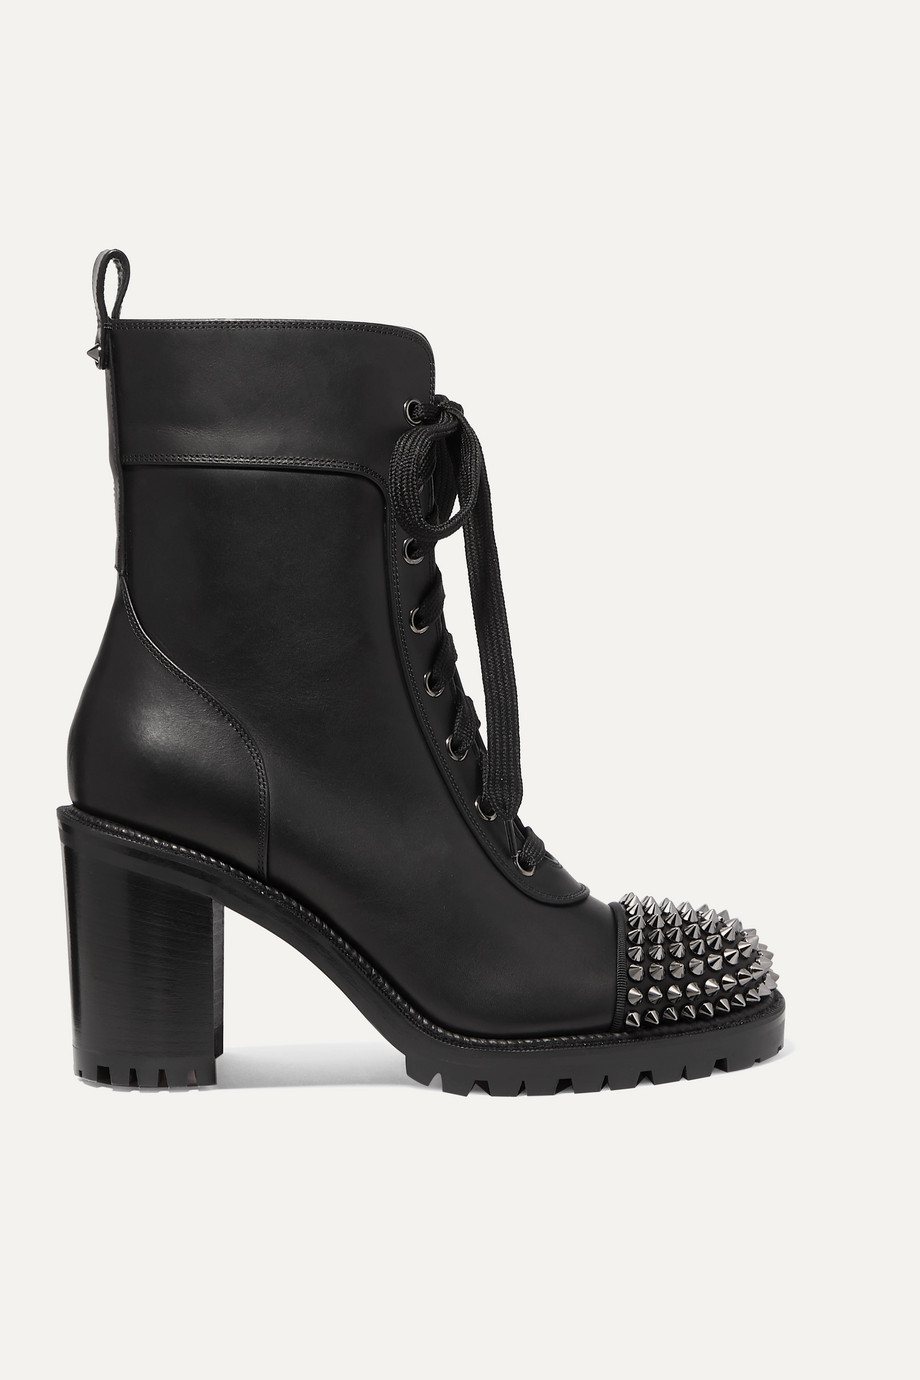 Christian Louboutin TS Croc 70 spiked leather ankle boots